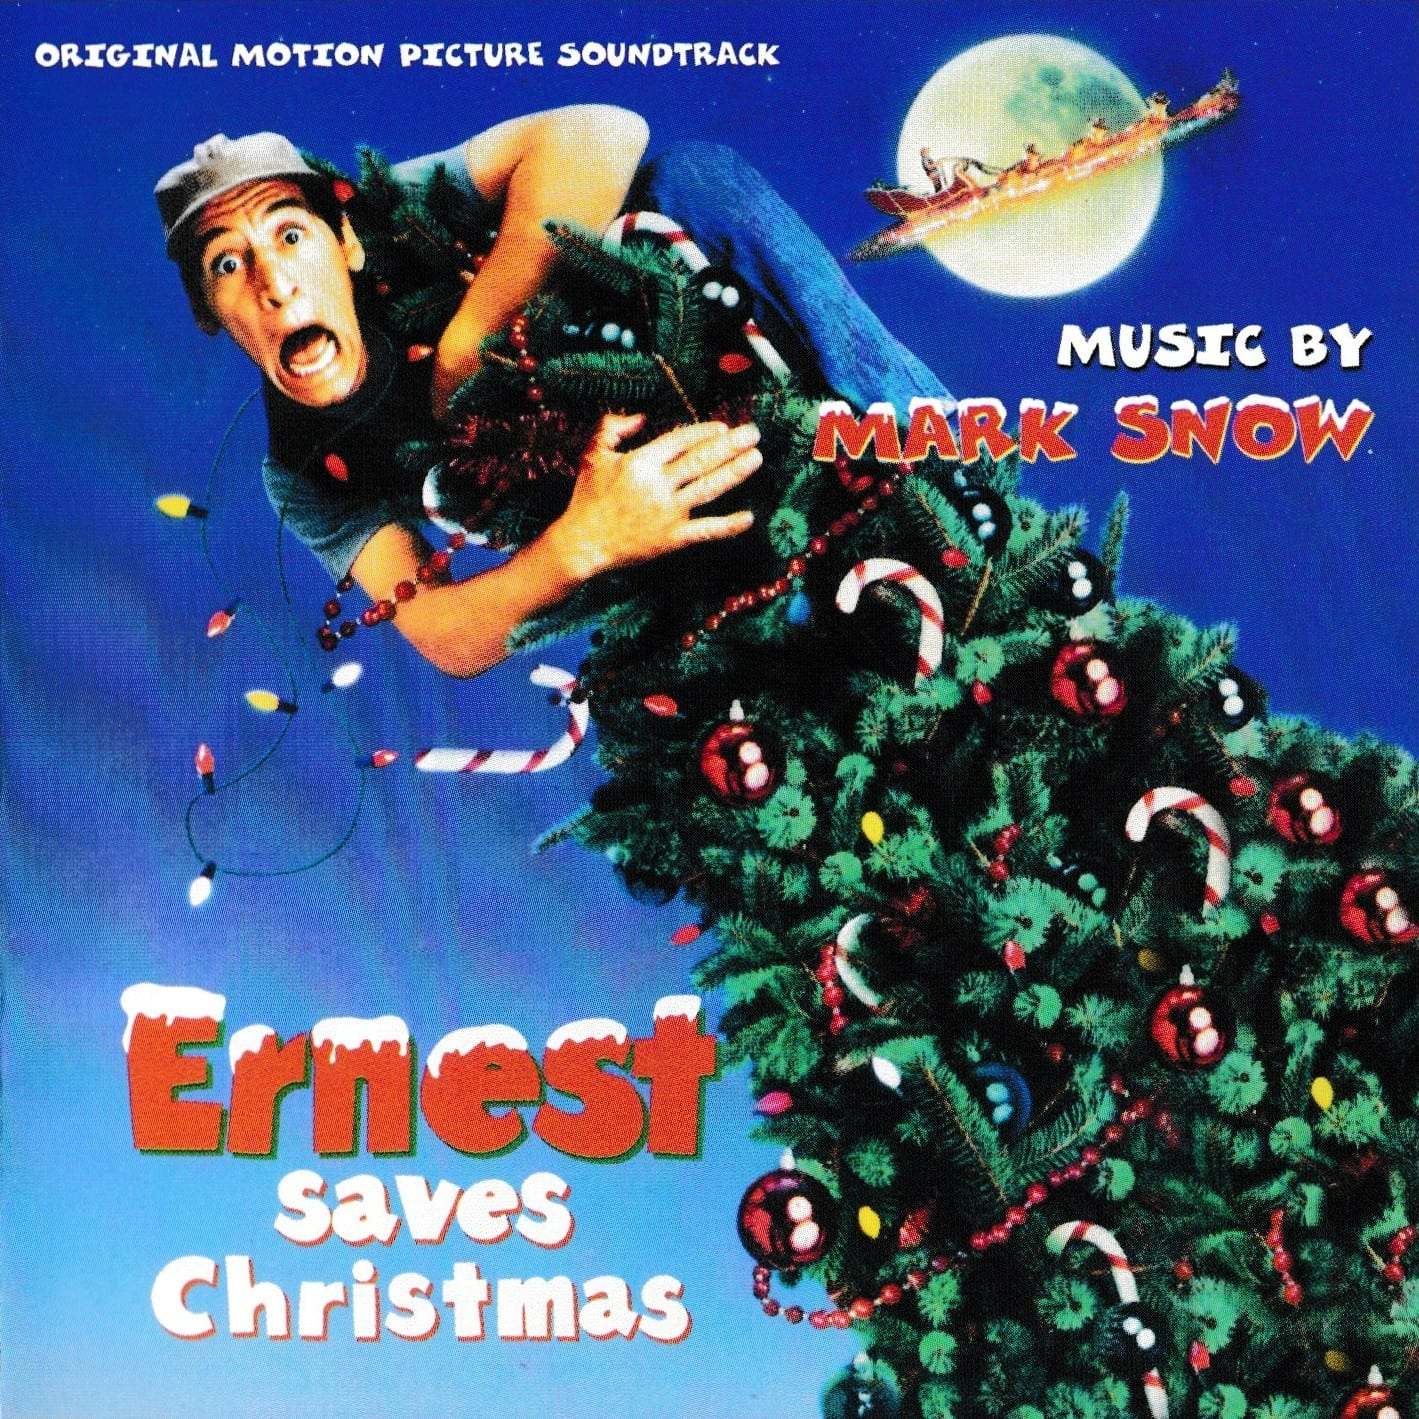 Dr. Seuss' How The Grinch Stole Christmas - Complete Original Motion Picture Score (EXPANDED EDITION) (2007) CD 6